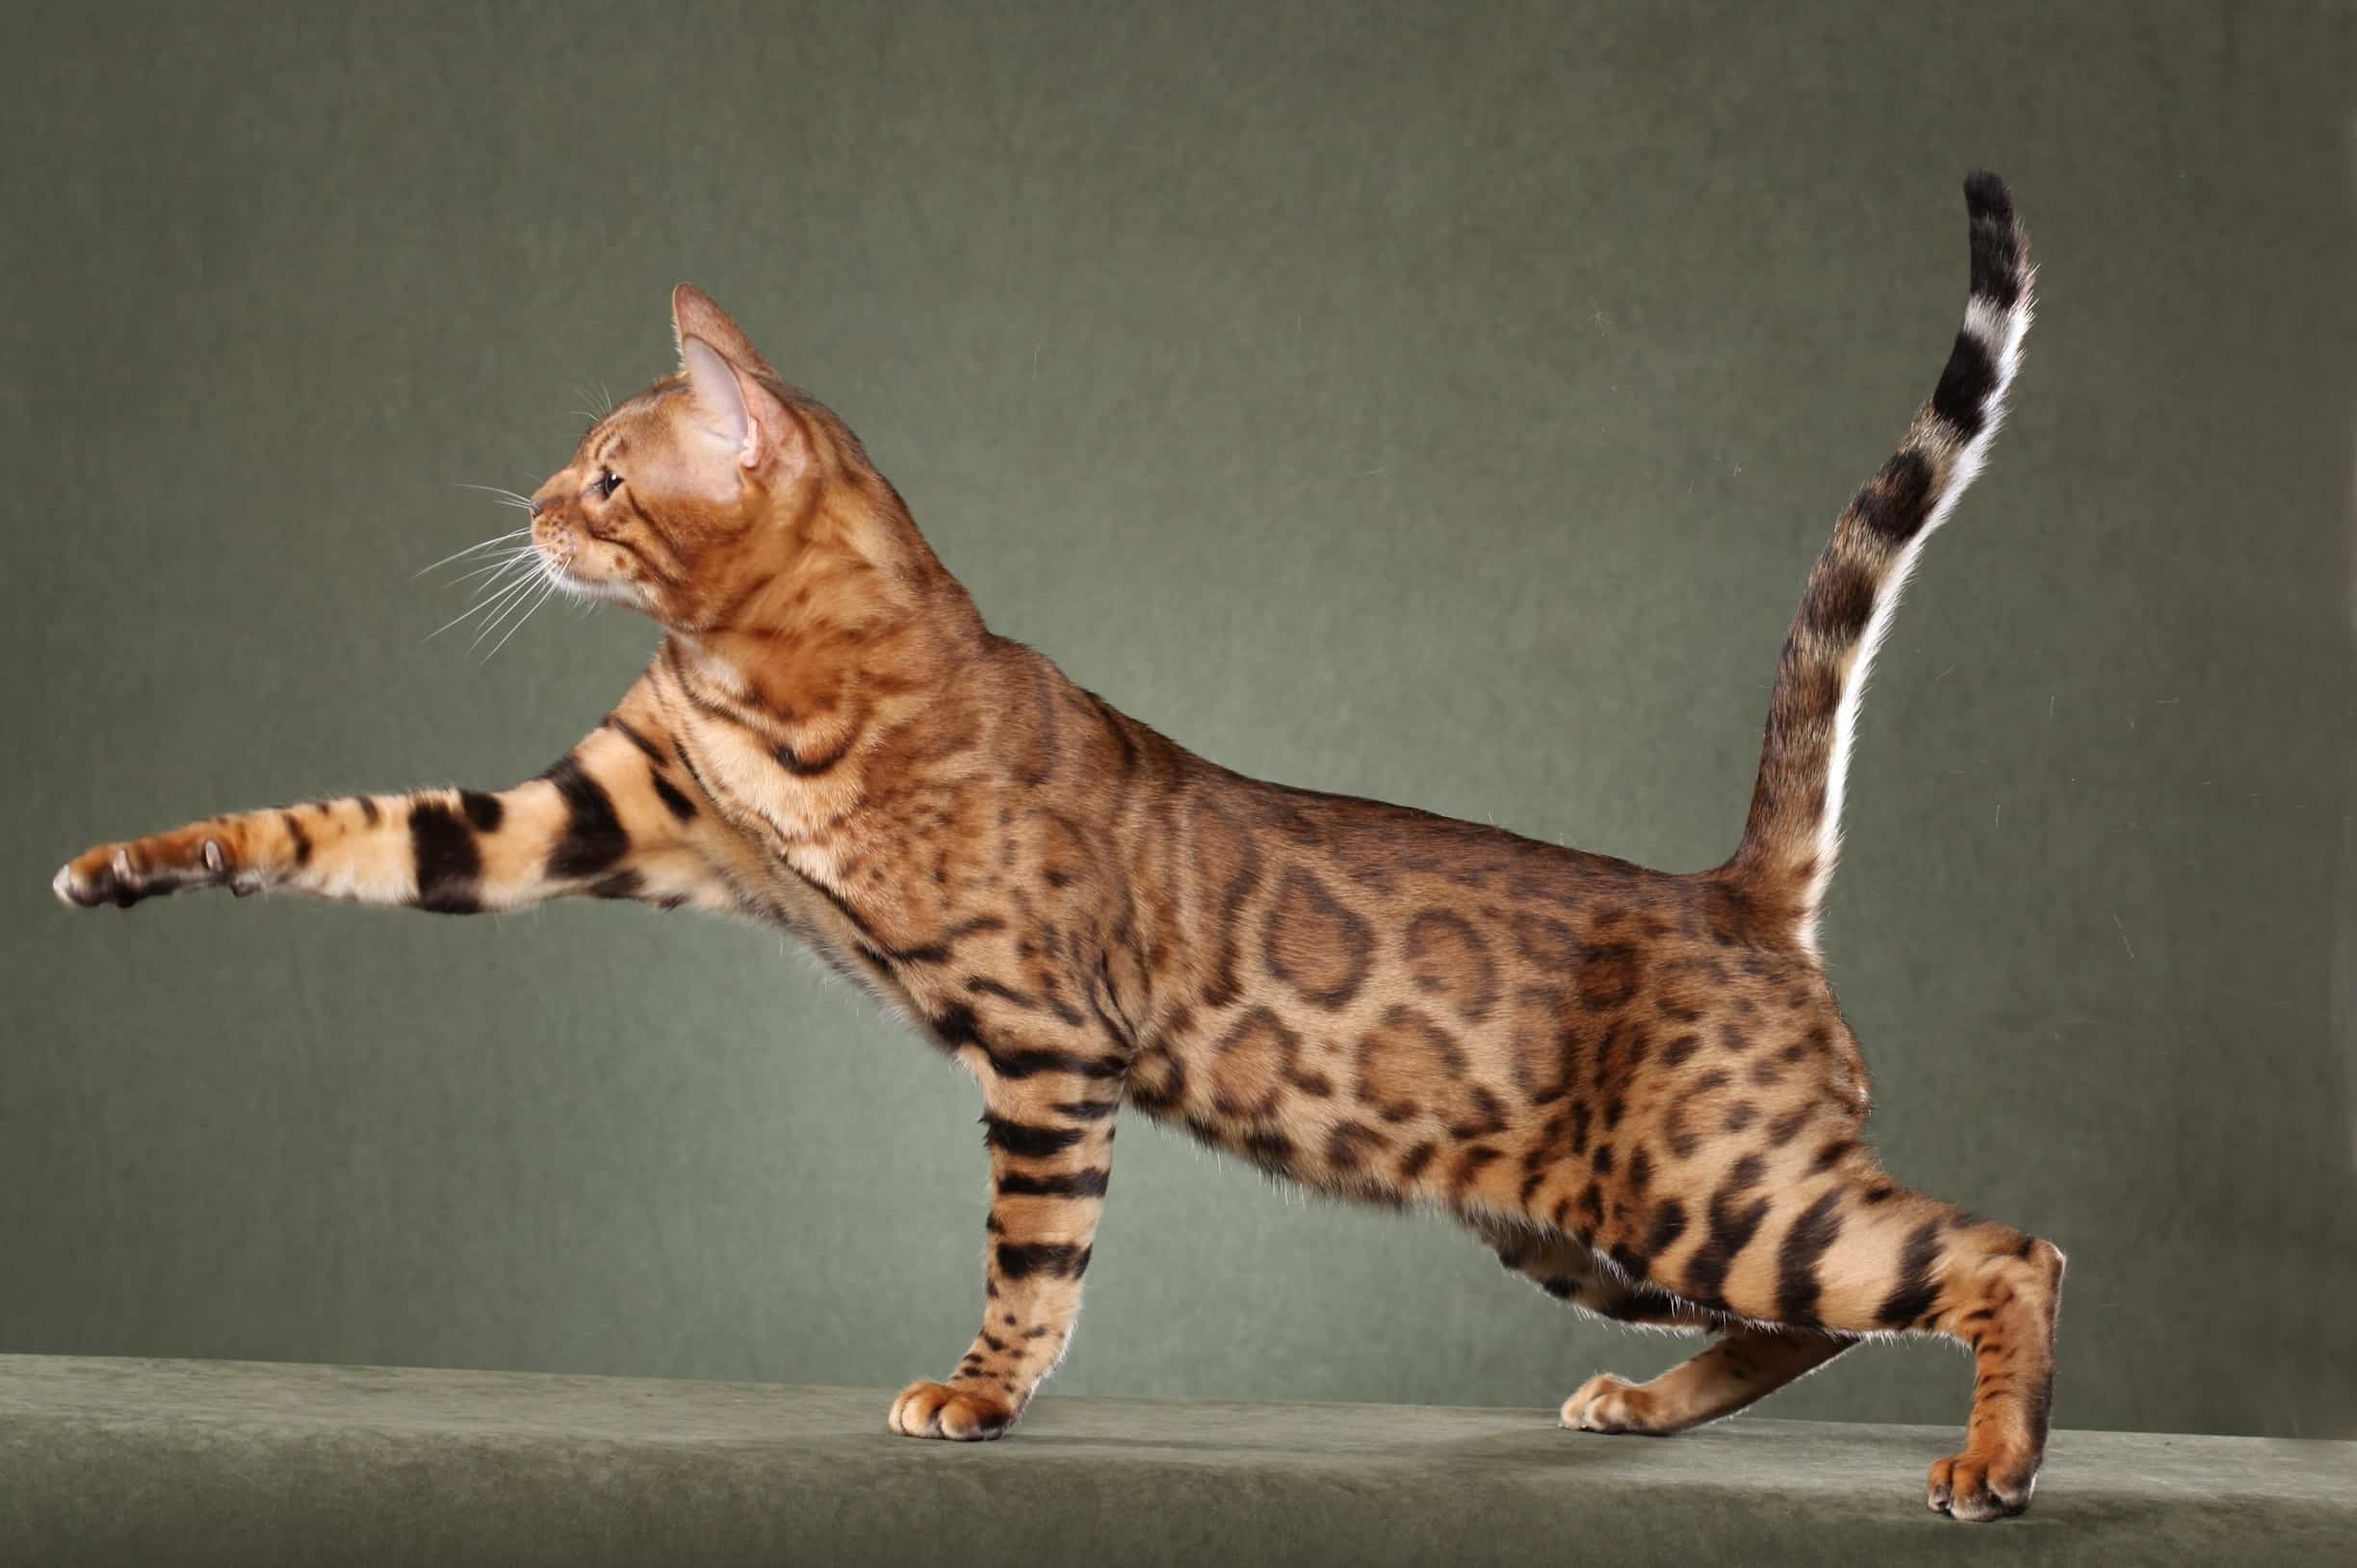 Savannah Cat – Purrfect Cat Breeds